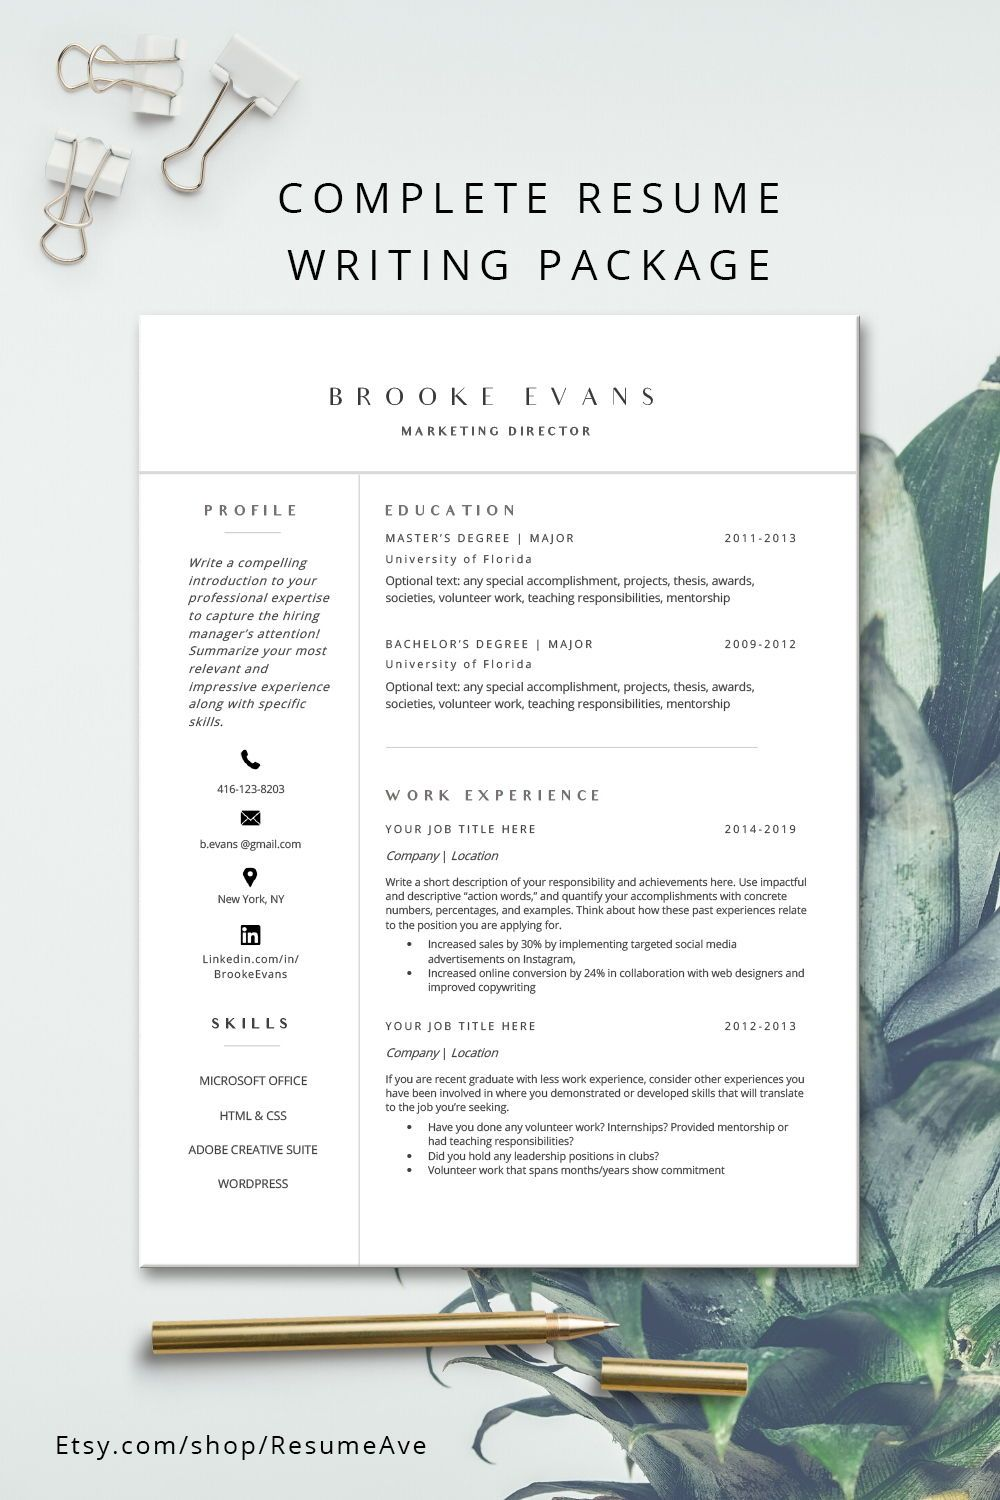 modern resume template word instant minimal etsy teacher the step youth pastor proposal Resume The 24 Step Modern Resume